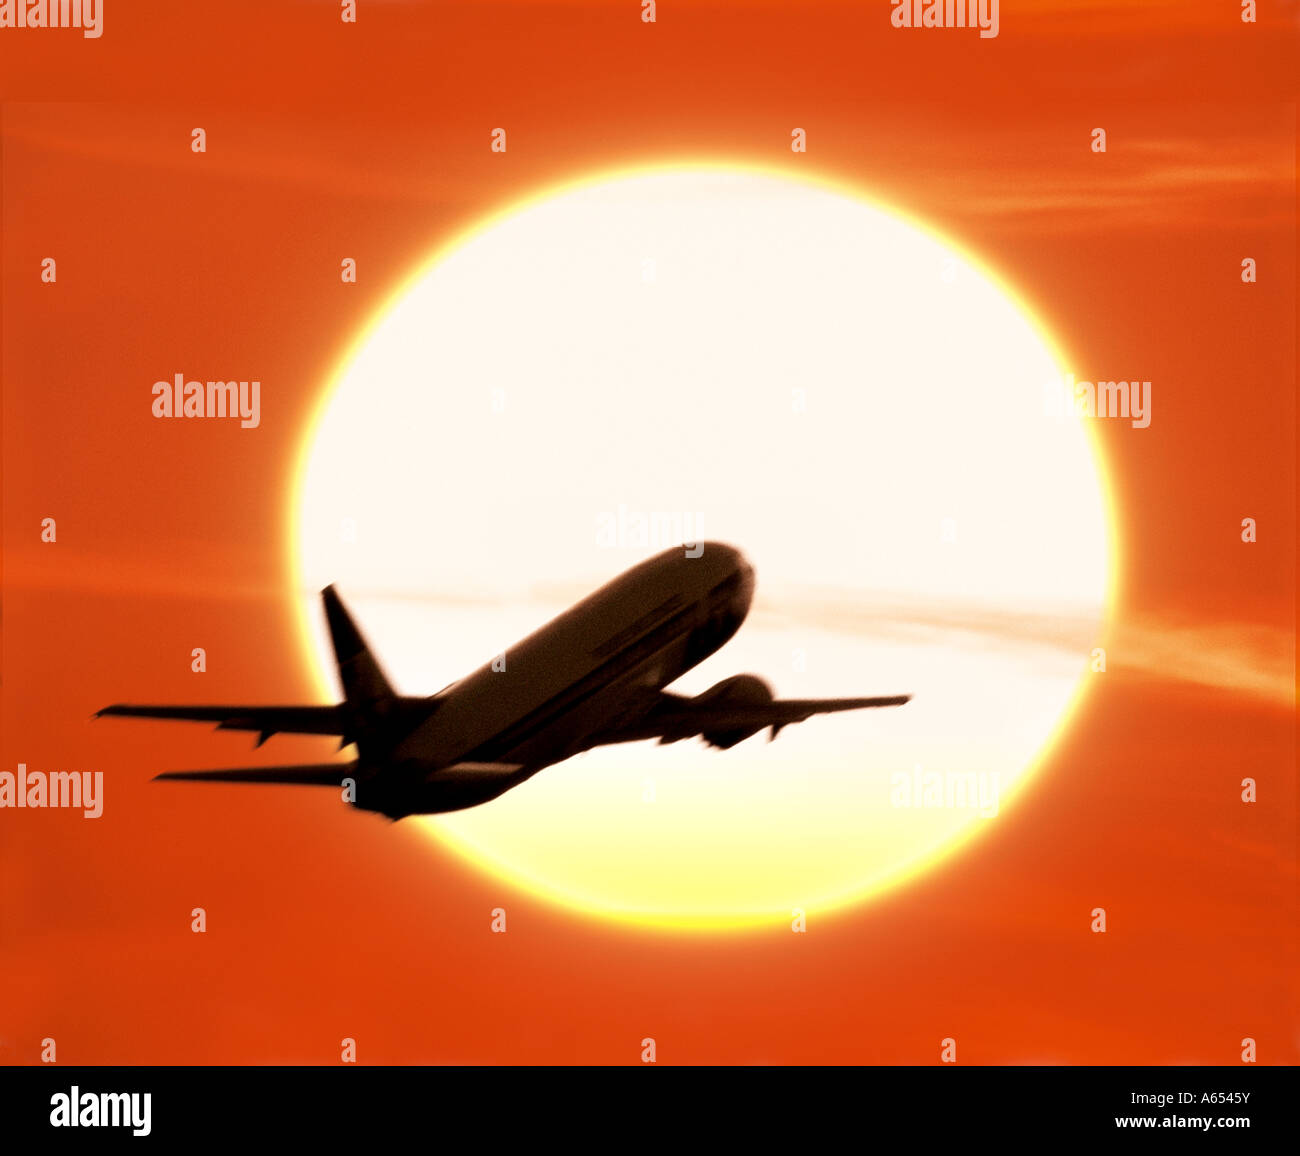 Plane taking off silhouetted against the setting sun - Stock Image